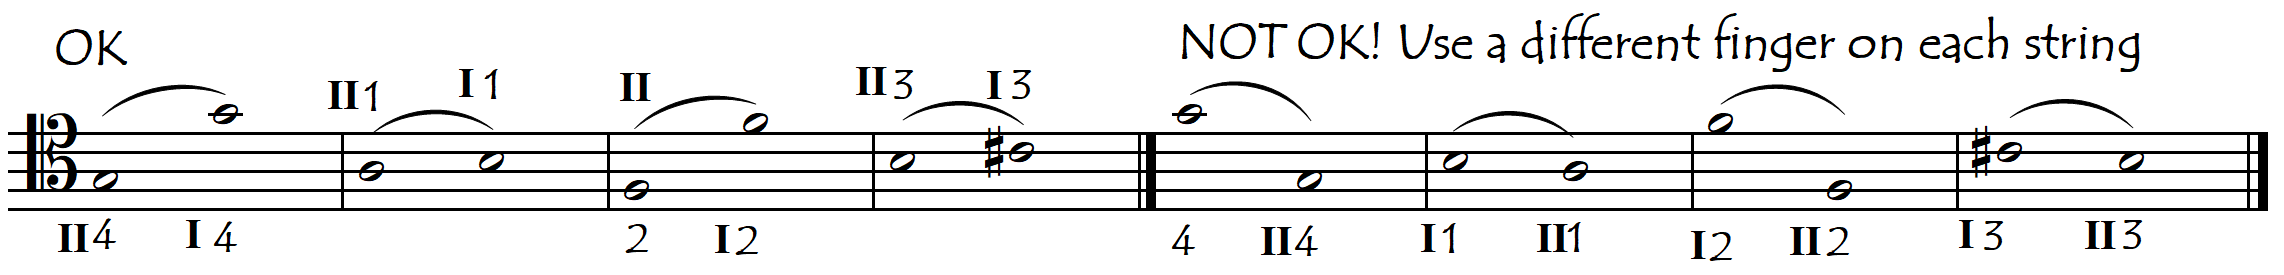 shifting to new string OK and not OK new